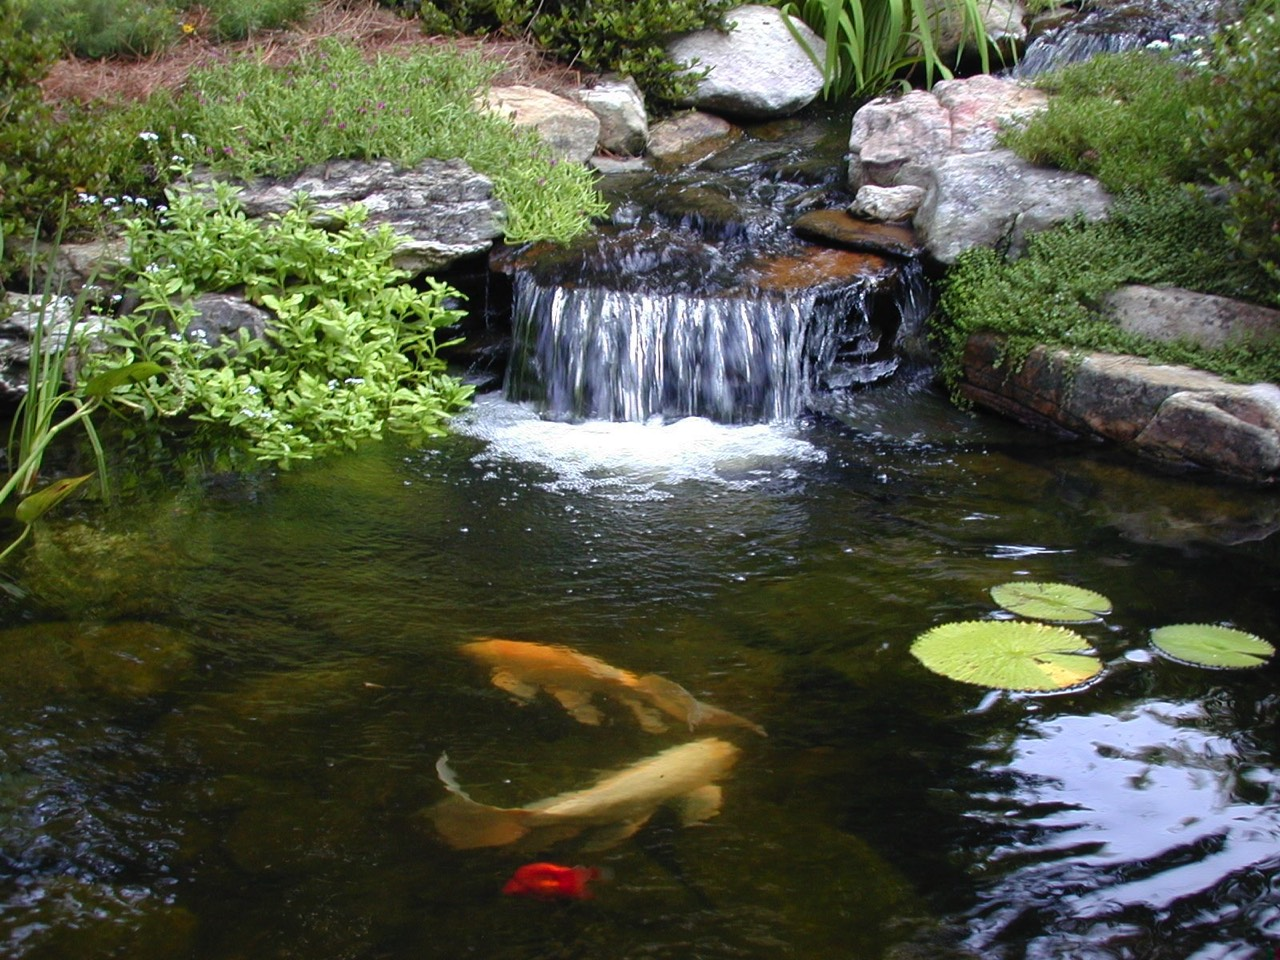 Sanctuary gardens designed specifically to be your unique for Koi pool water